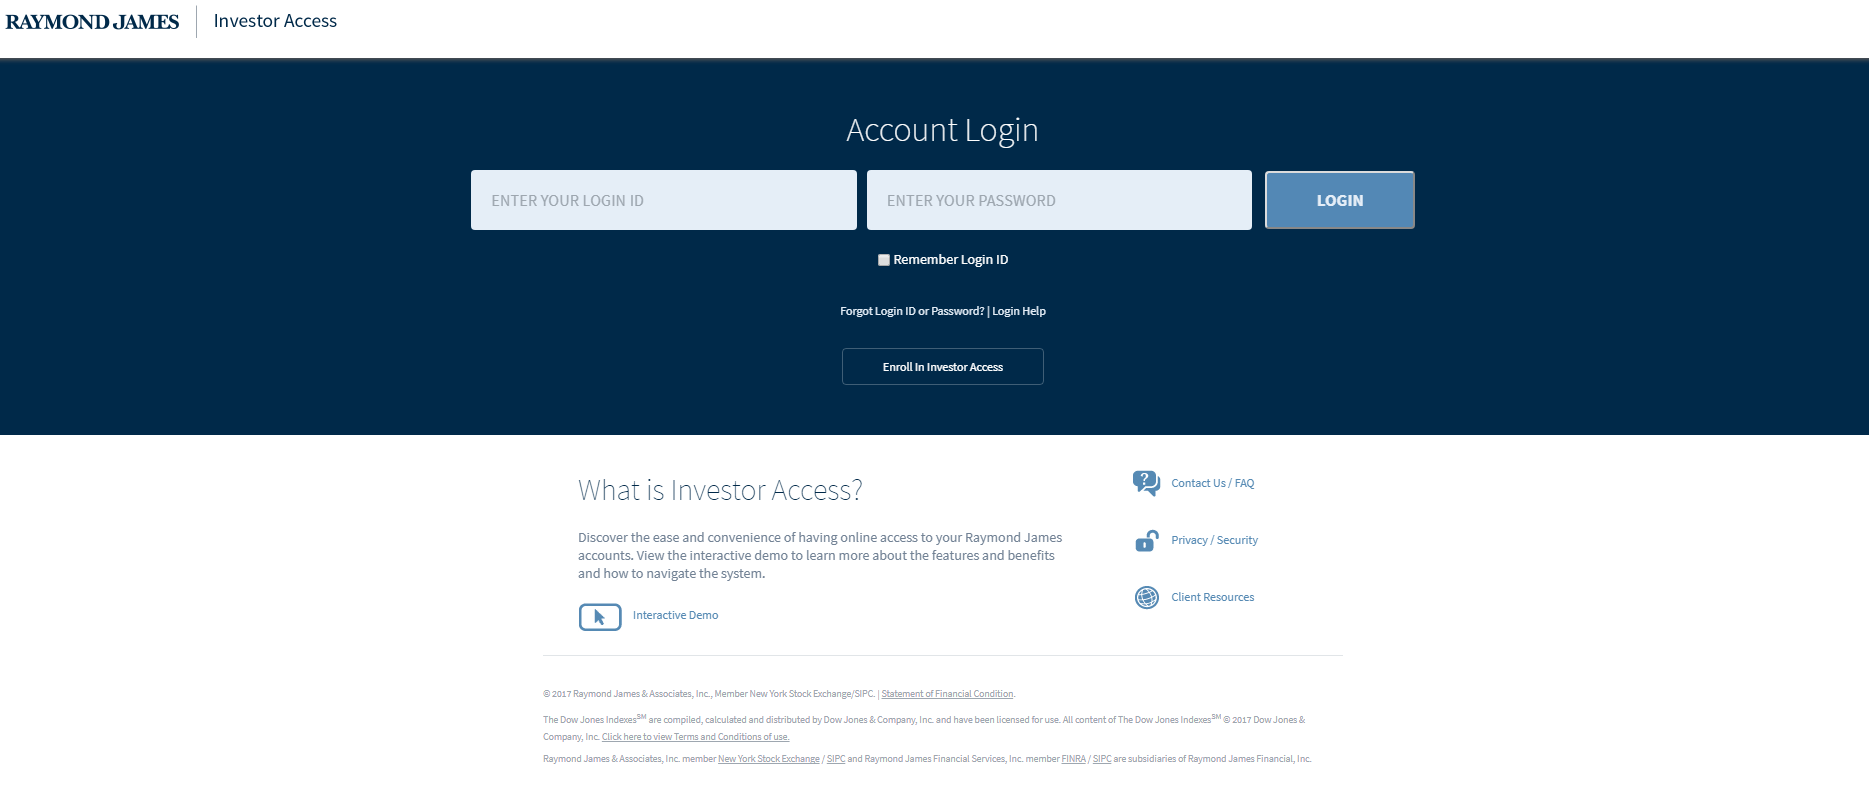 Raymond James | Investor Access | Enhancements